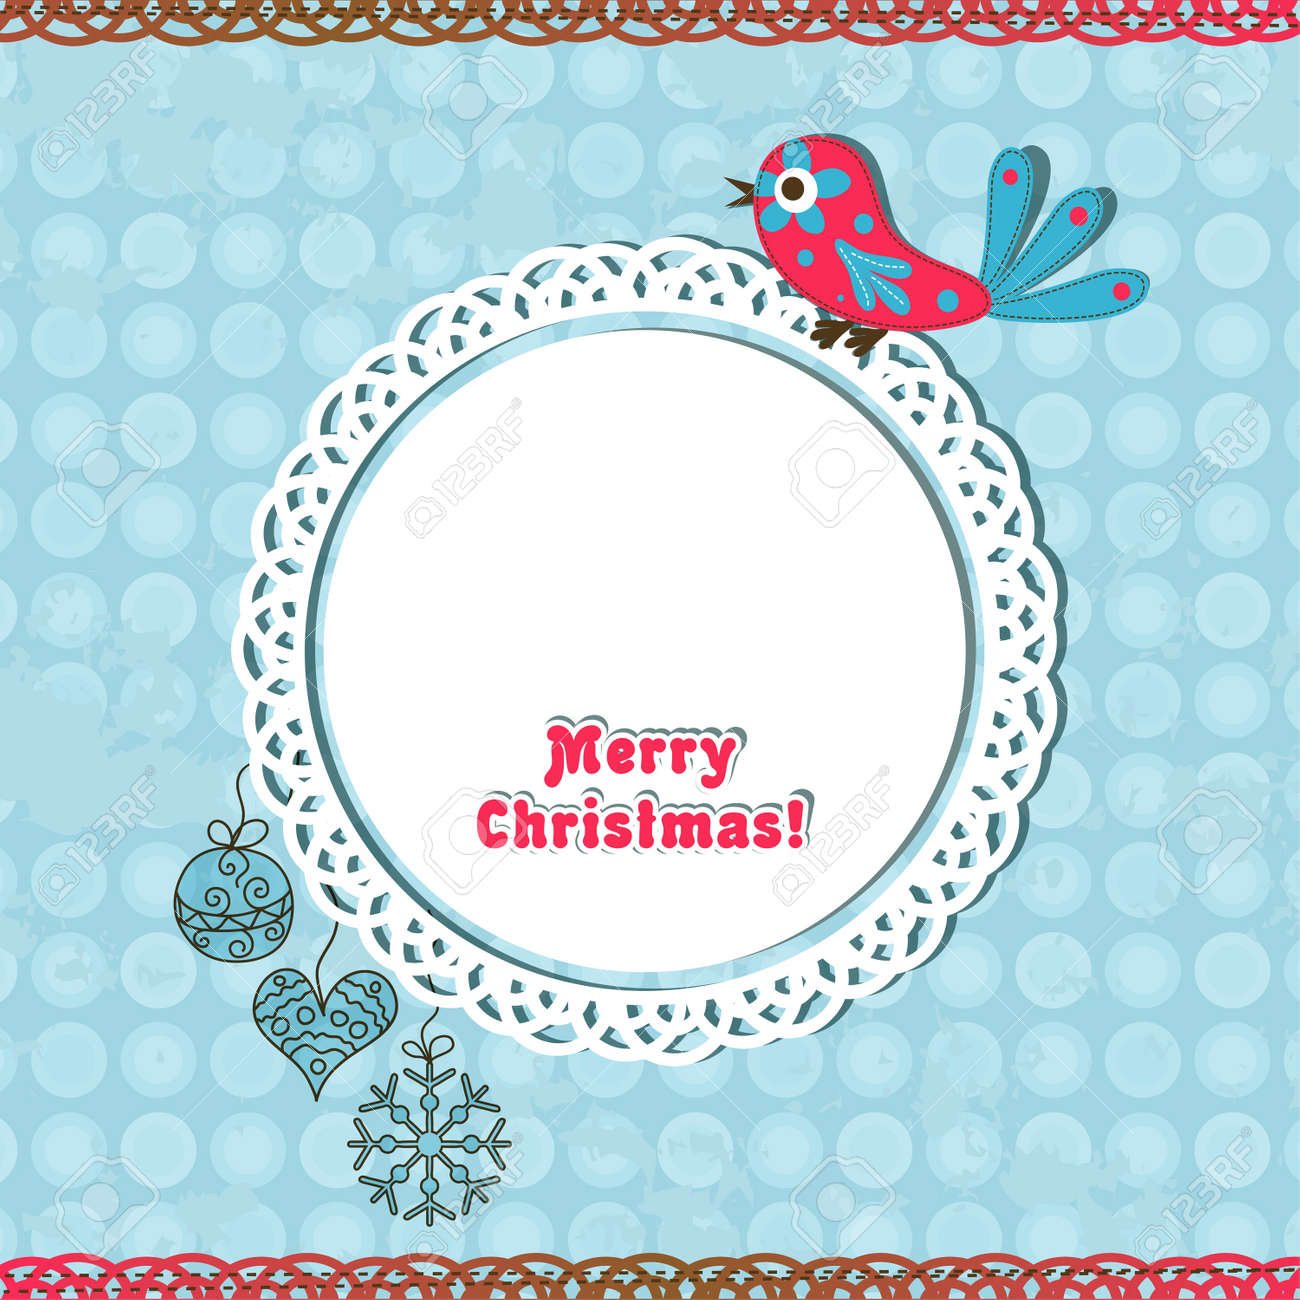 Template christmas greeting card, vector illustration Stock Vector - 16683819